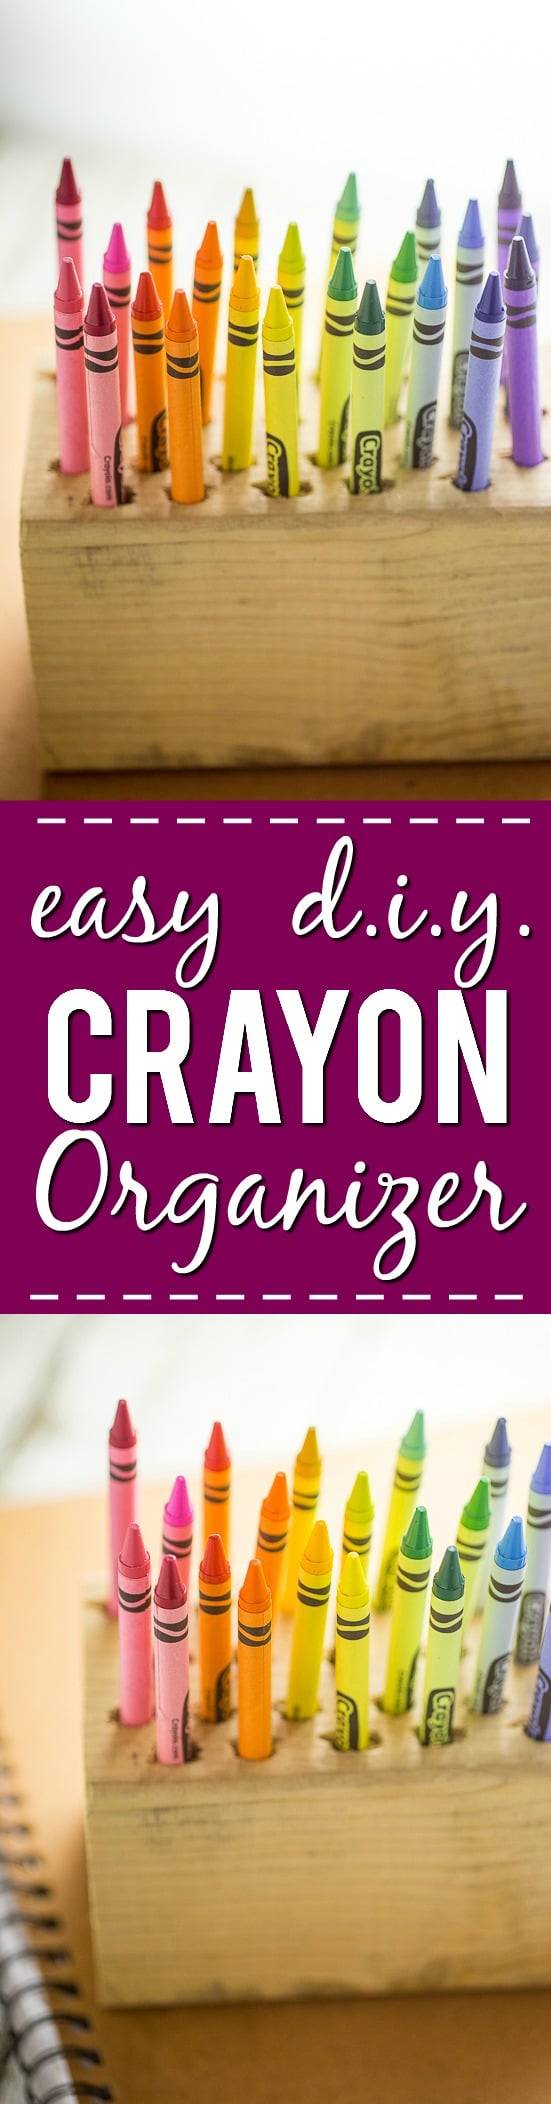 DIY Easy Crayon Organizer tutorial - Make this quick and easy Crayon Organizer for the kids to store their crayons or even colored pencils or markers. It's cheap, easy to make, easy to use, and a pretty way to organize the coloring mess! Perfect easy craft supplies organization for kids!